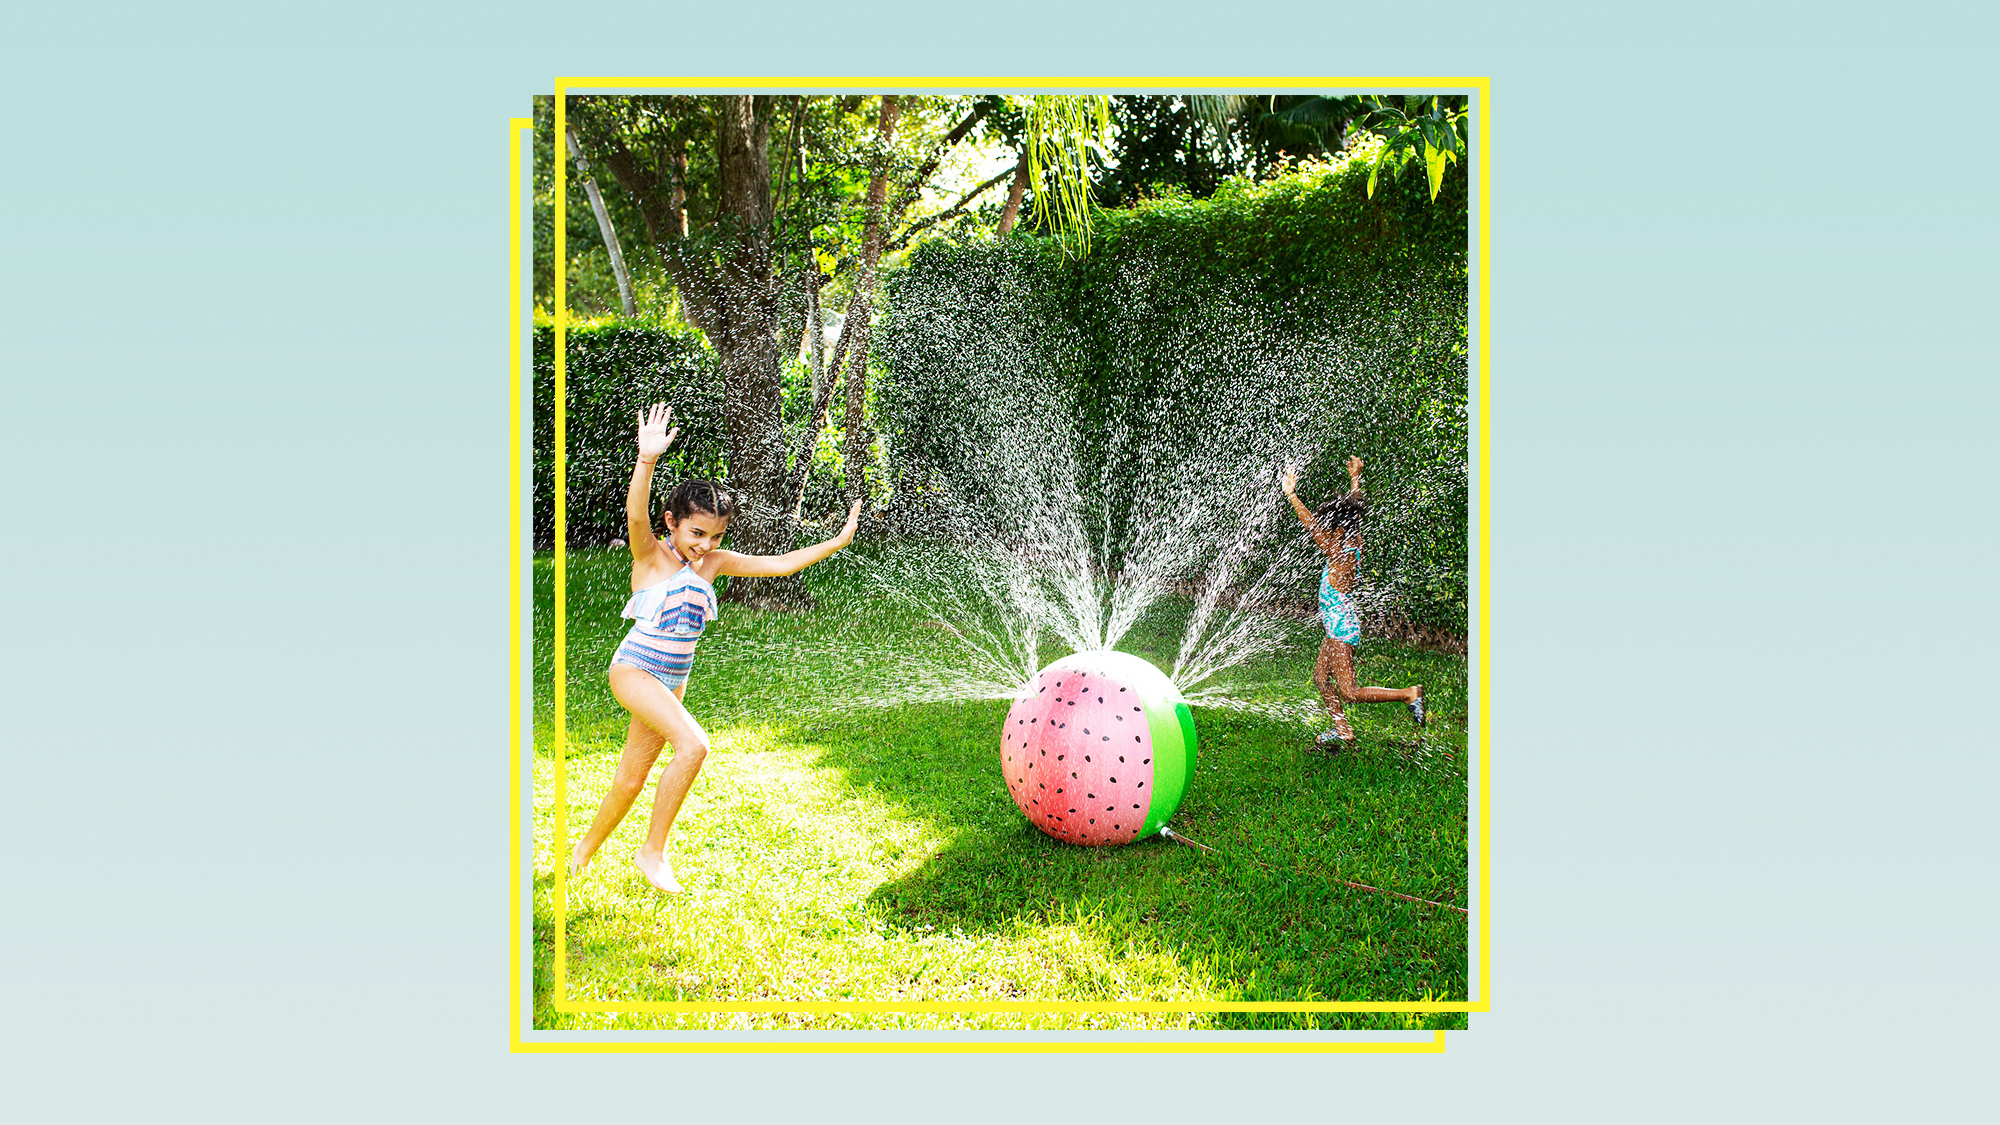 two kids playing in a sprinkler shaped like a watermelon